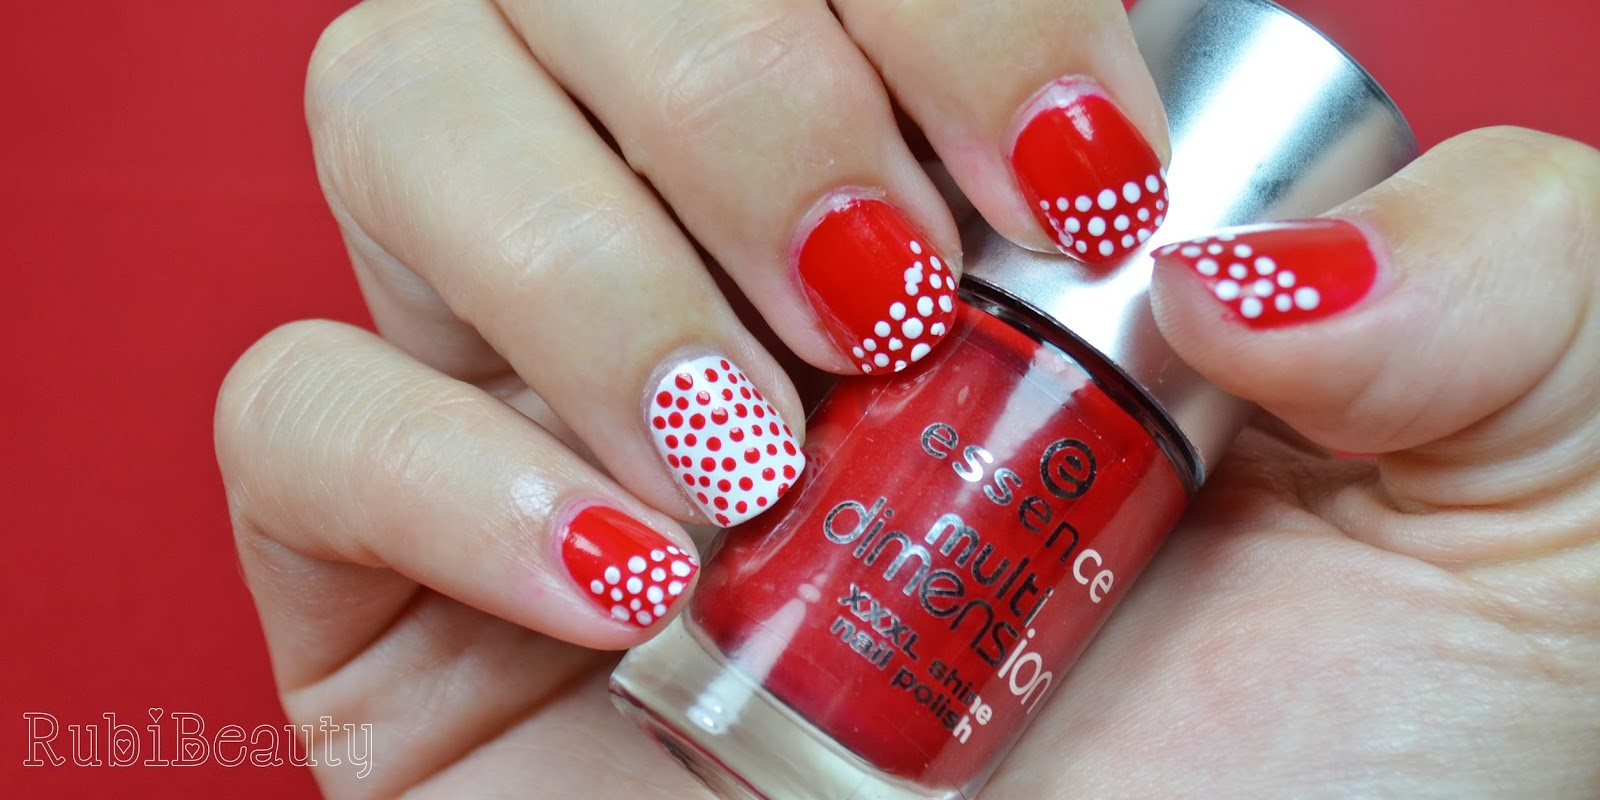 nail art diseños uñas puntos rojo red comic ojo horus it huelva rubibeauty